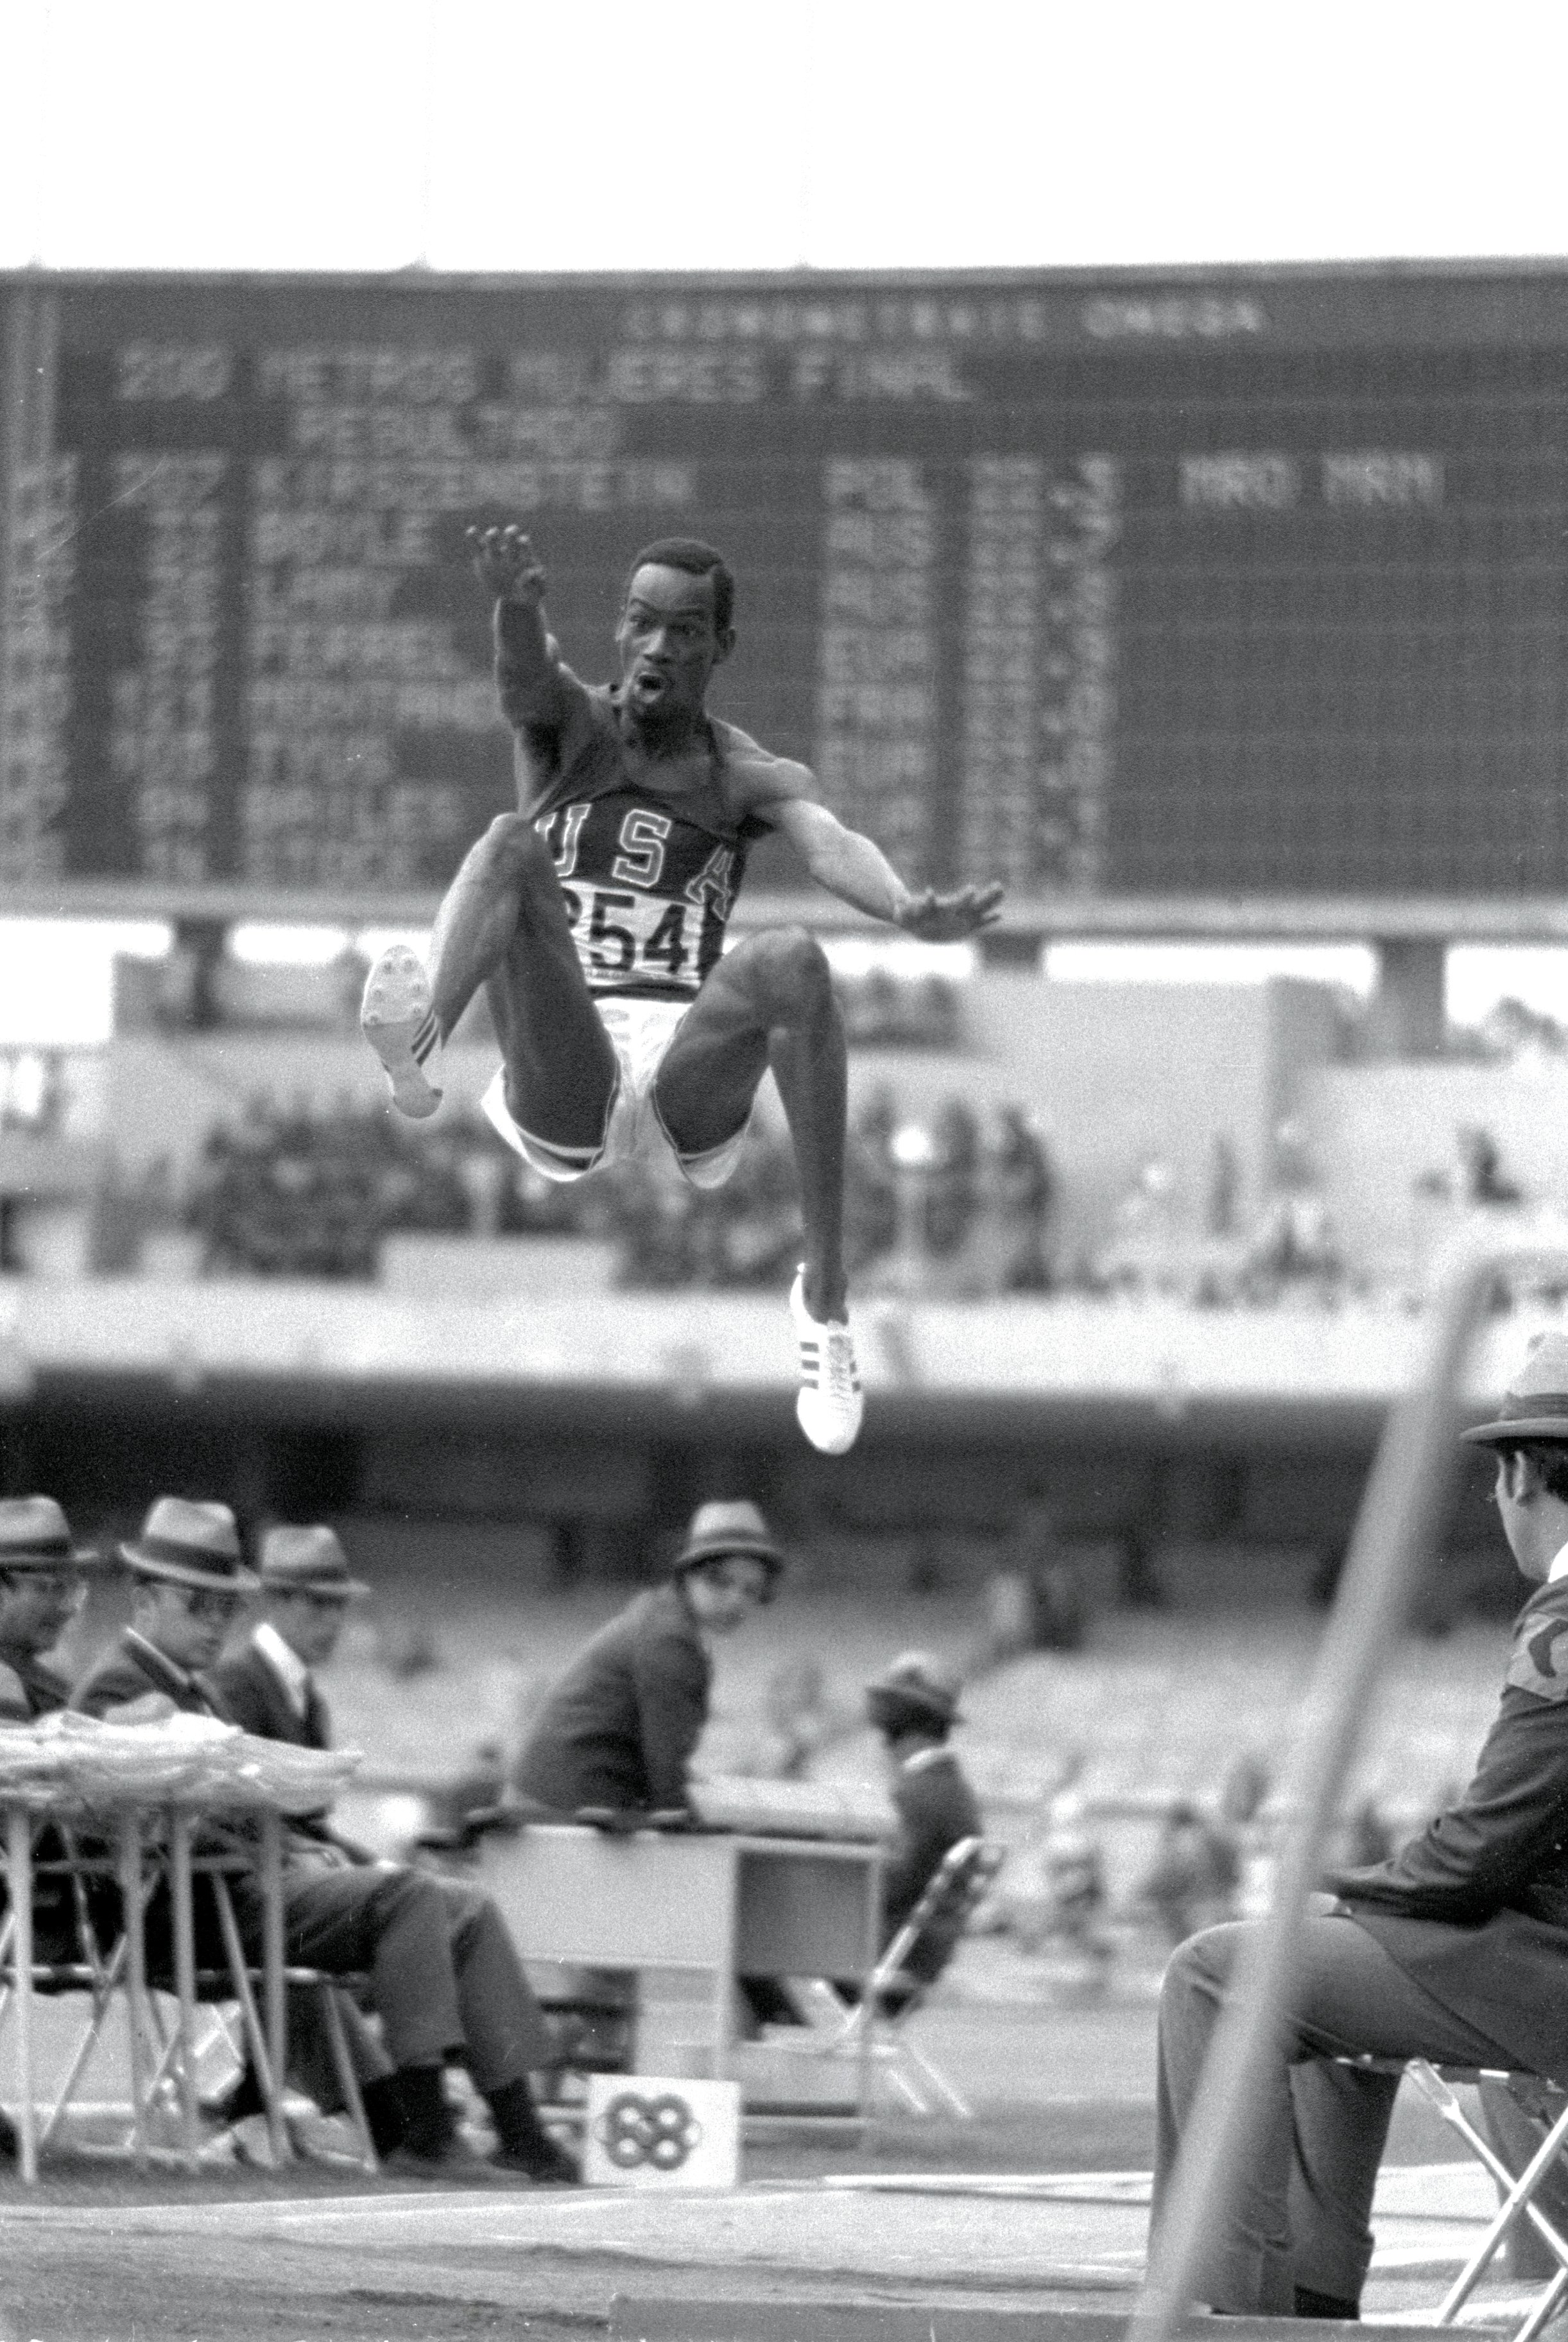 18 Oct 1968:. Bob Beamon # 254 of the US  breaking the Long Jump World Record during the  1968 Olympic Games in Mexico City, Mexico Beamon  long jumped 8.9 m (29 ft 2 1/2 in), winning the  gold medal and setting a new . It is the first  world record jump over 28 ft The most famous long  jump ever Achieved:. Bob Beamon of the United  States takes off for a place in sporting history  as he leaps 8.90 meters at the Mexico City Games  of 1968. While the middle distance runners from  the low level countries floundered in the thin air  of Mexico City, Those in the explosive events  reached new peaks, none higher than Beamon, who  added 58 centimètres to the world record with a  jump aided by a wind of 2 meters per second the  very limit of wind assistance. In Imperial measure  terms it Looked even more impressive since he  missed out 28 feet, taking the record to 29 ft 2  ins. Yet Beamon never again managed a jump of 27  feet. It was twelve years before anyone else  reached 28 feet (8:53 meters) and the record stood  until 1991 When Mike Powell of the US leapt 8.95  meters in Tokyo to win the world title. His jump  which at sea level and wind assistance of 0.3mps.  Mandatory Credit: Tony Duffy / Allsport